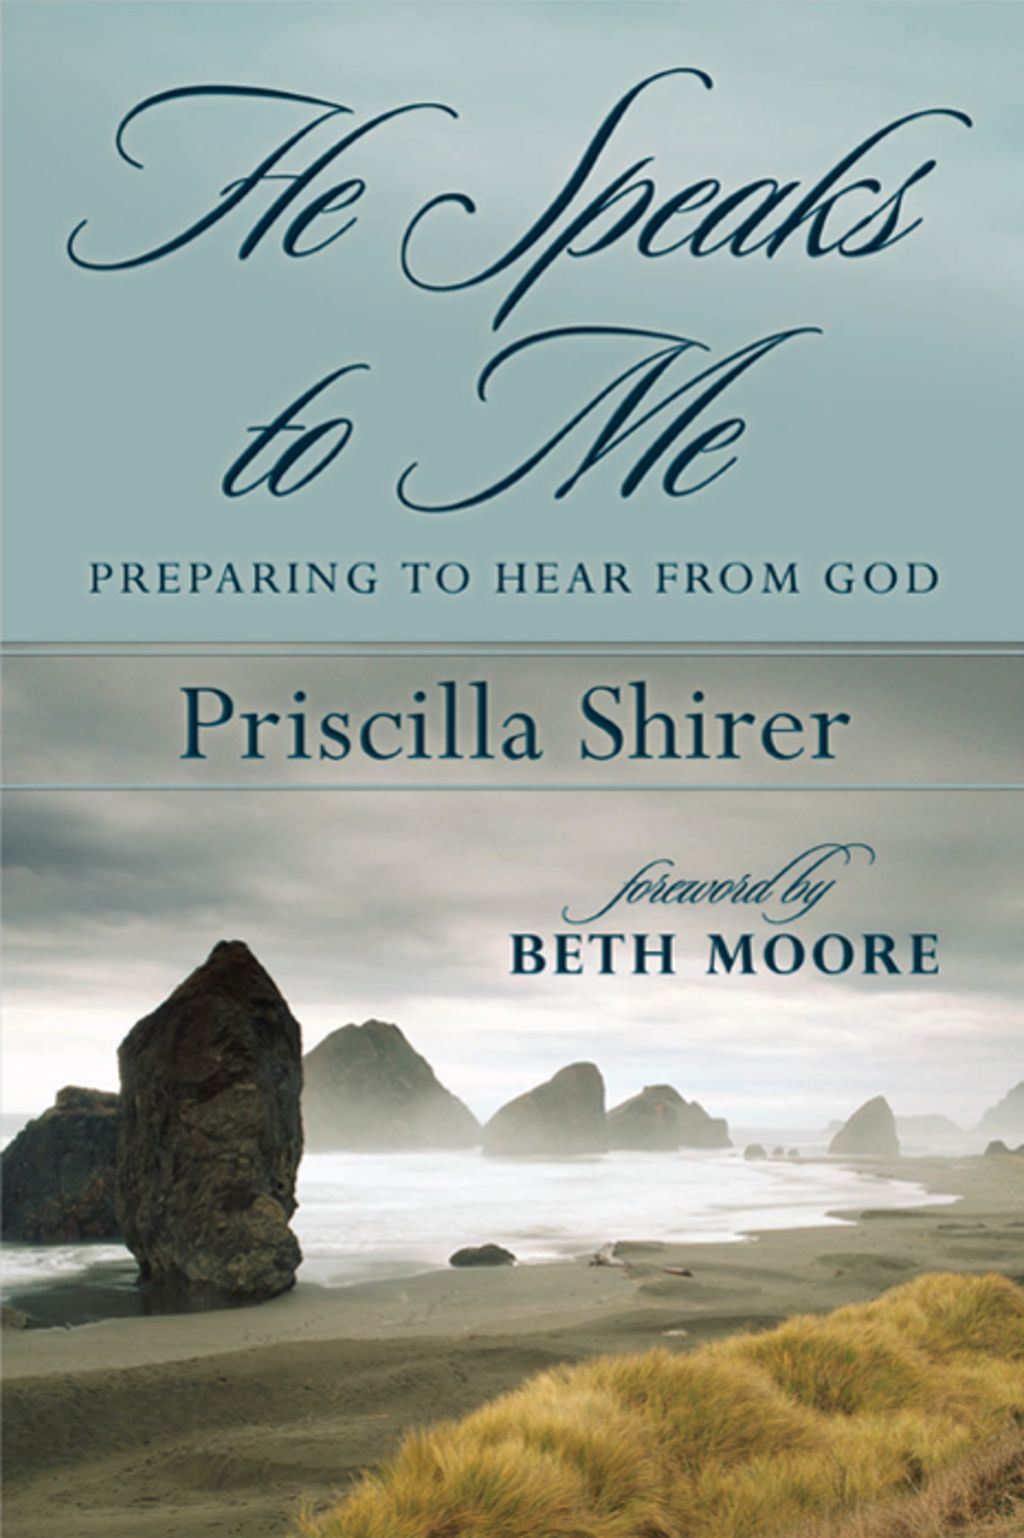 He speaks to me preparing to hear the voice of god ebook